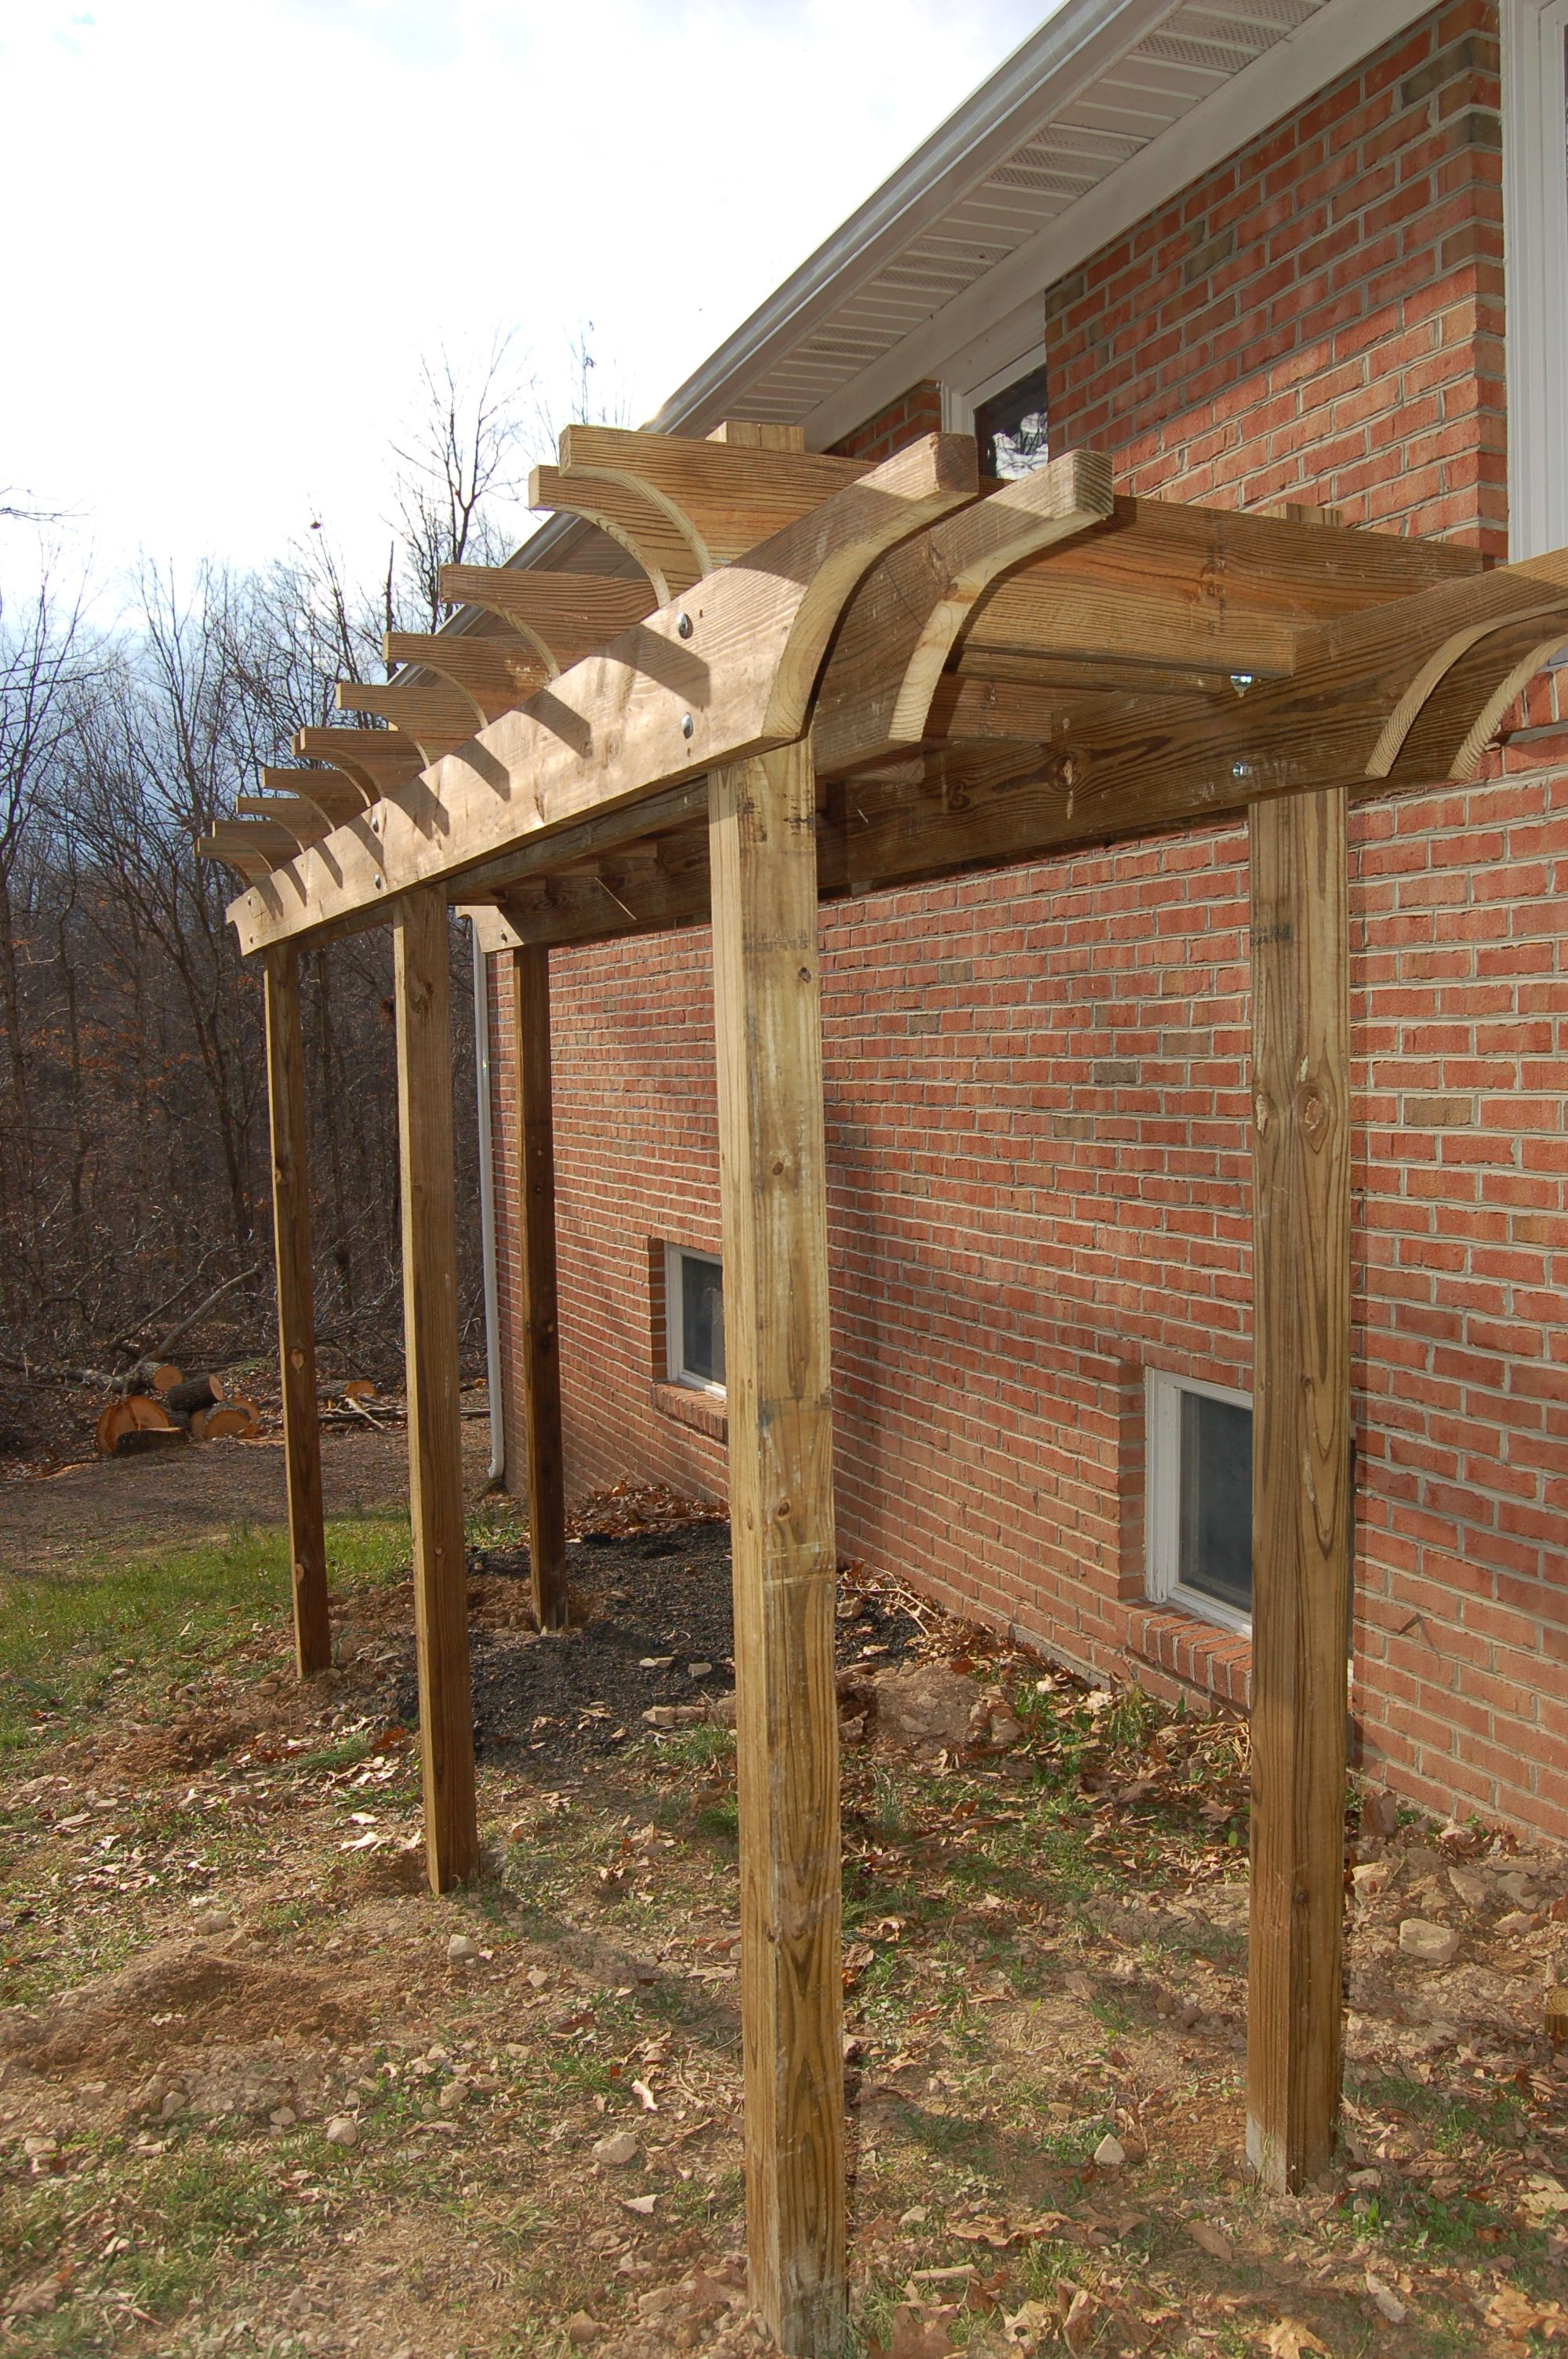 My New Kiwi Arbor Pergola Backyard Landscaping Designs